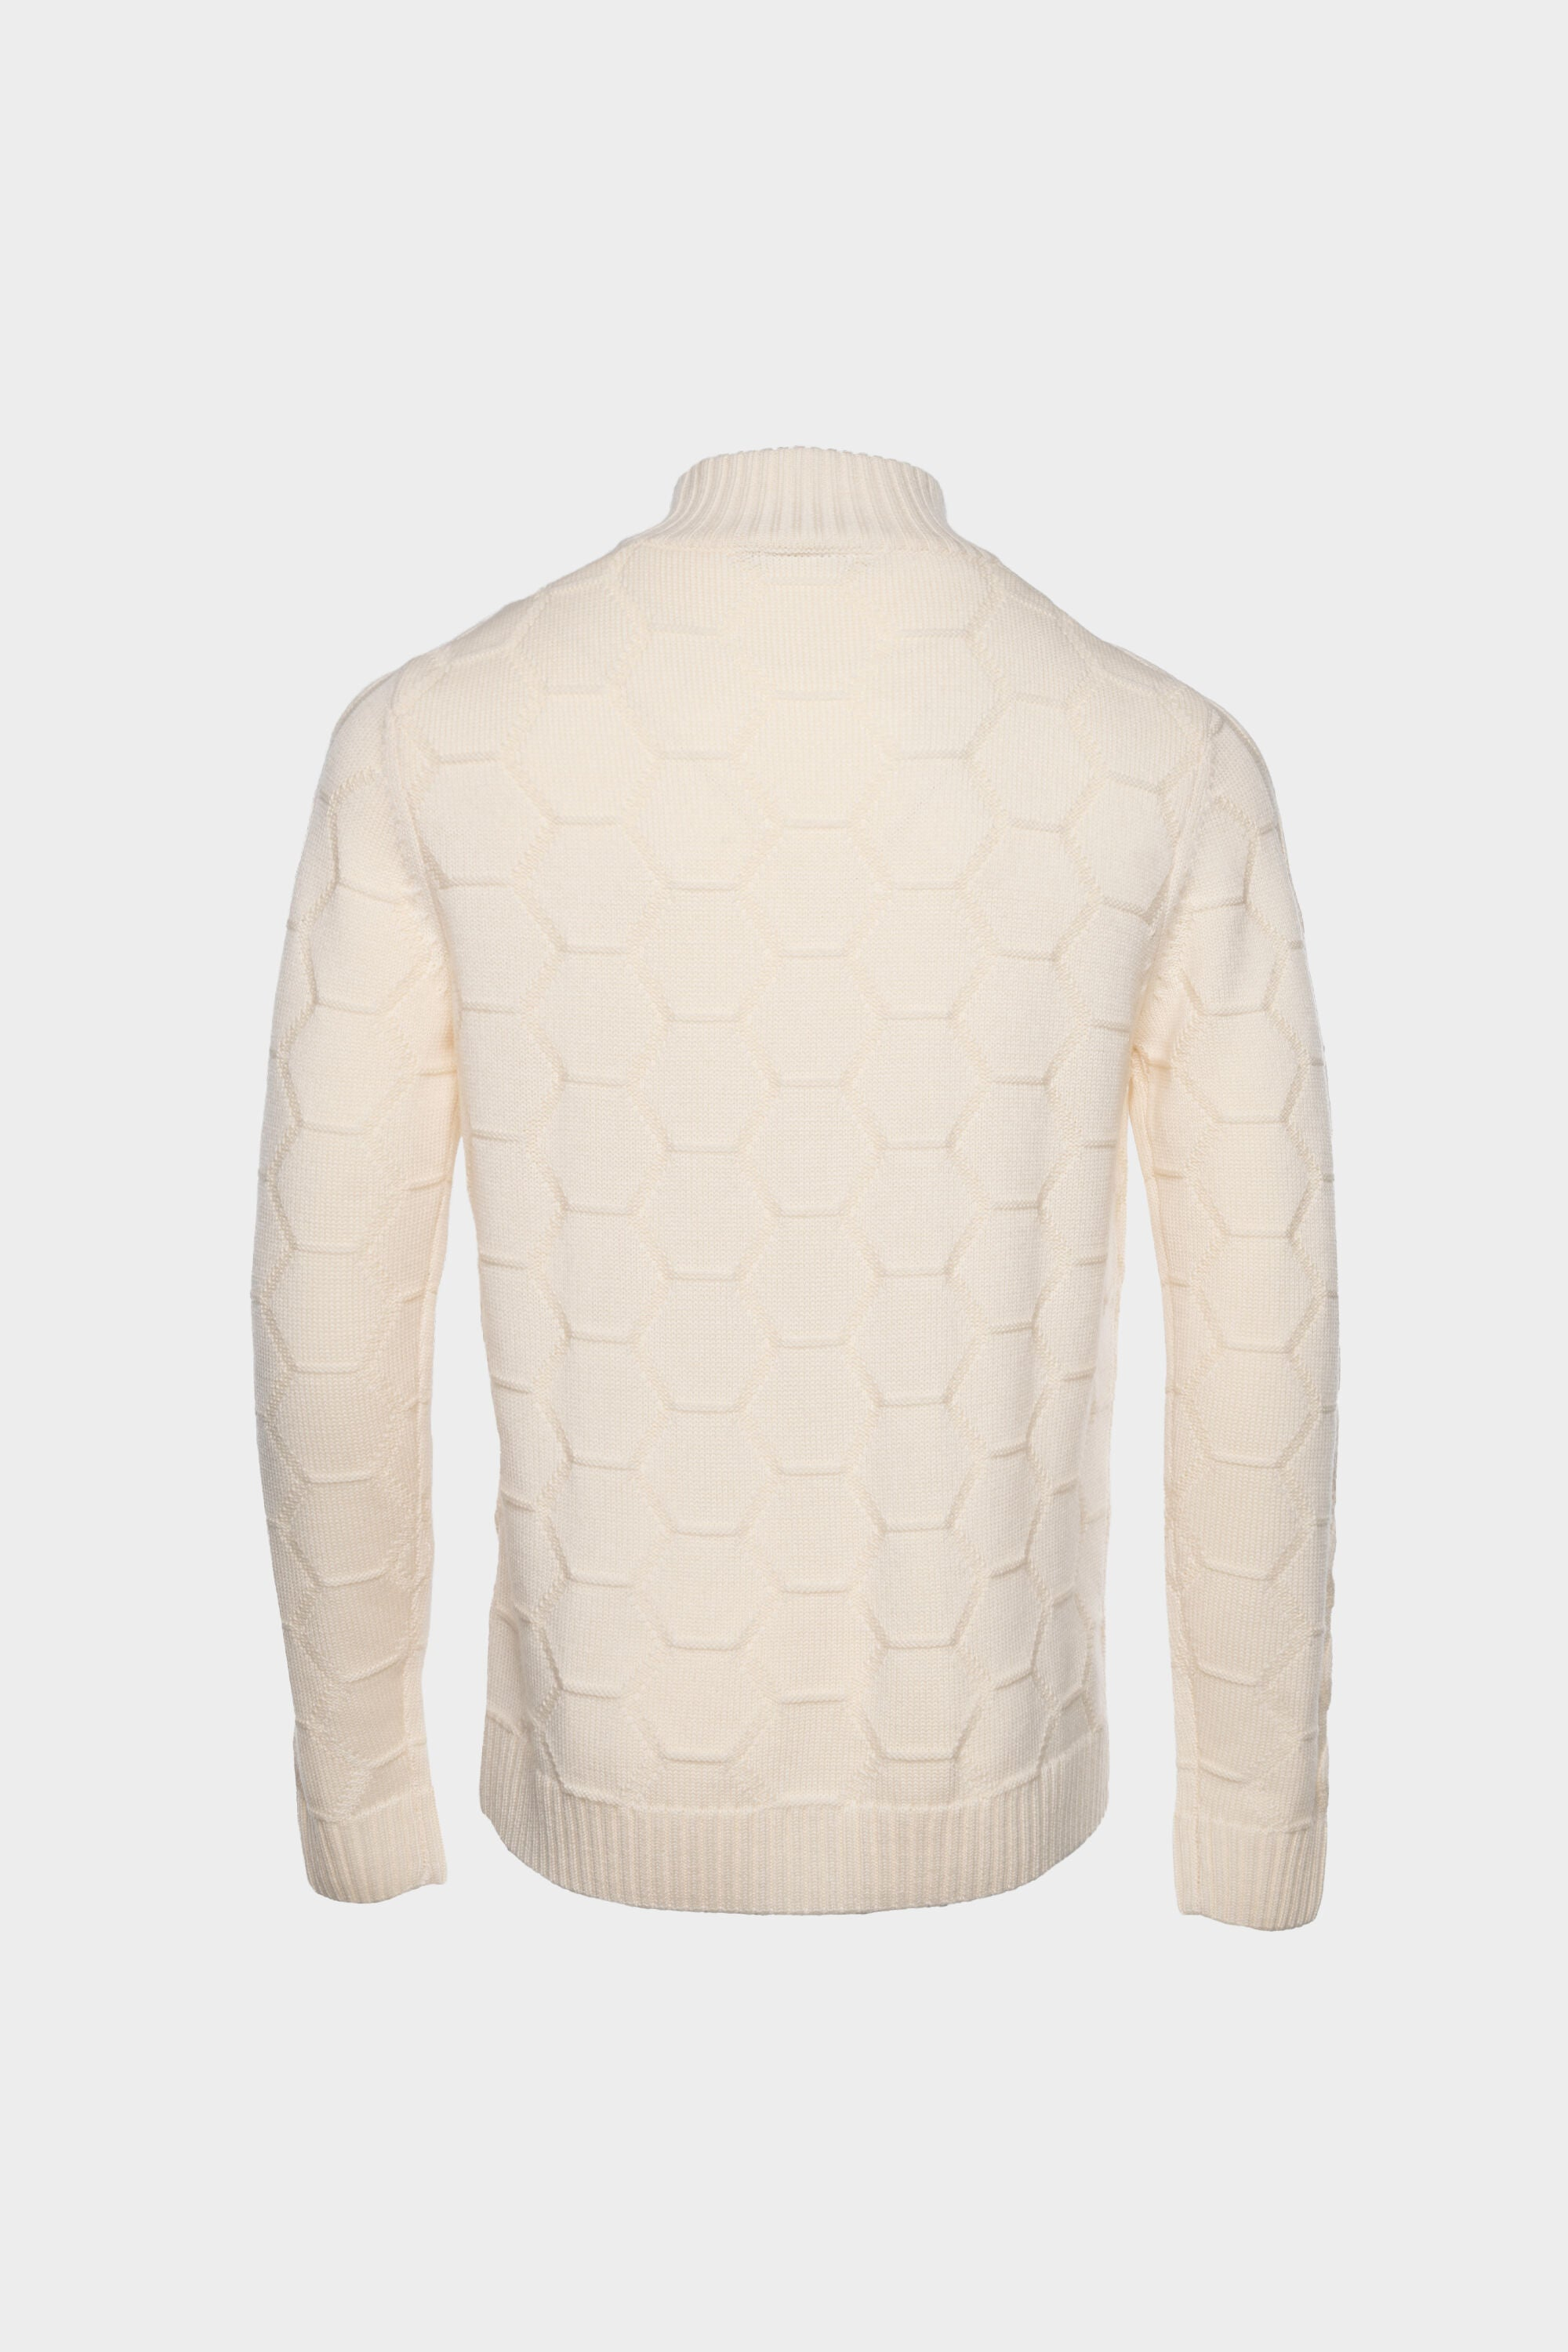 Knitted Hexagon Sweater Ivory